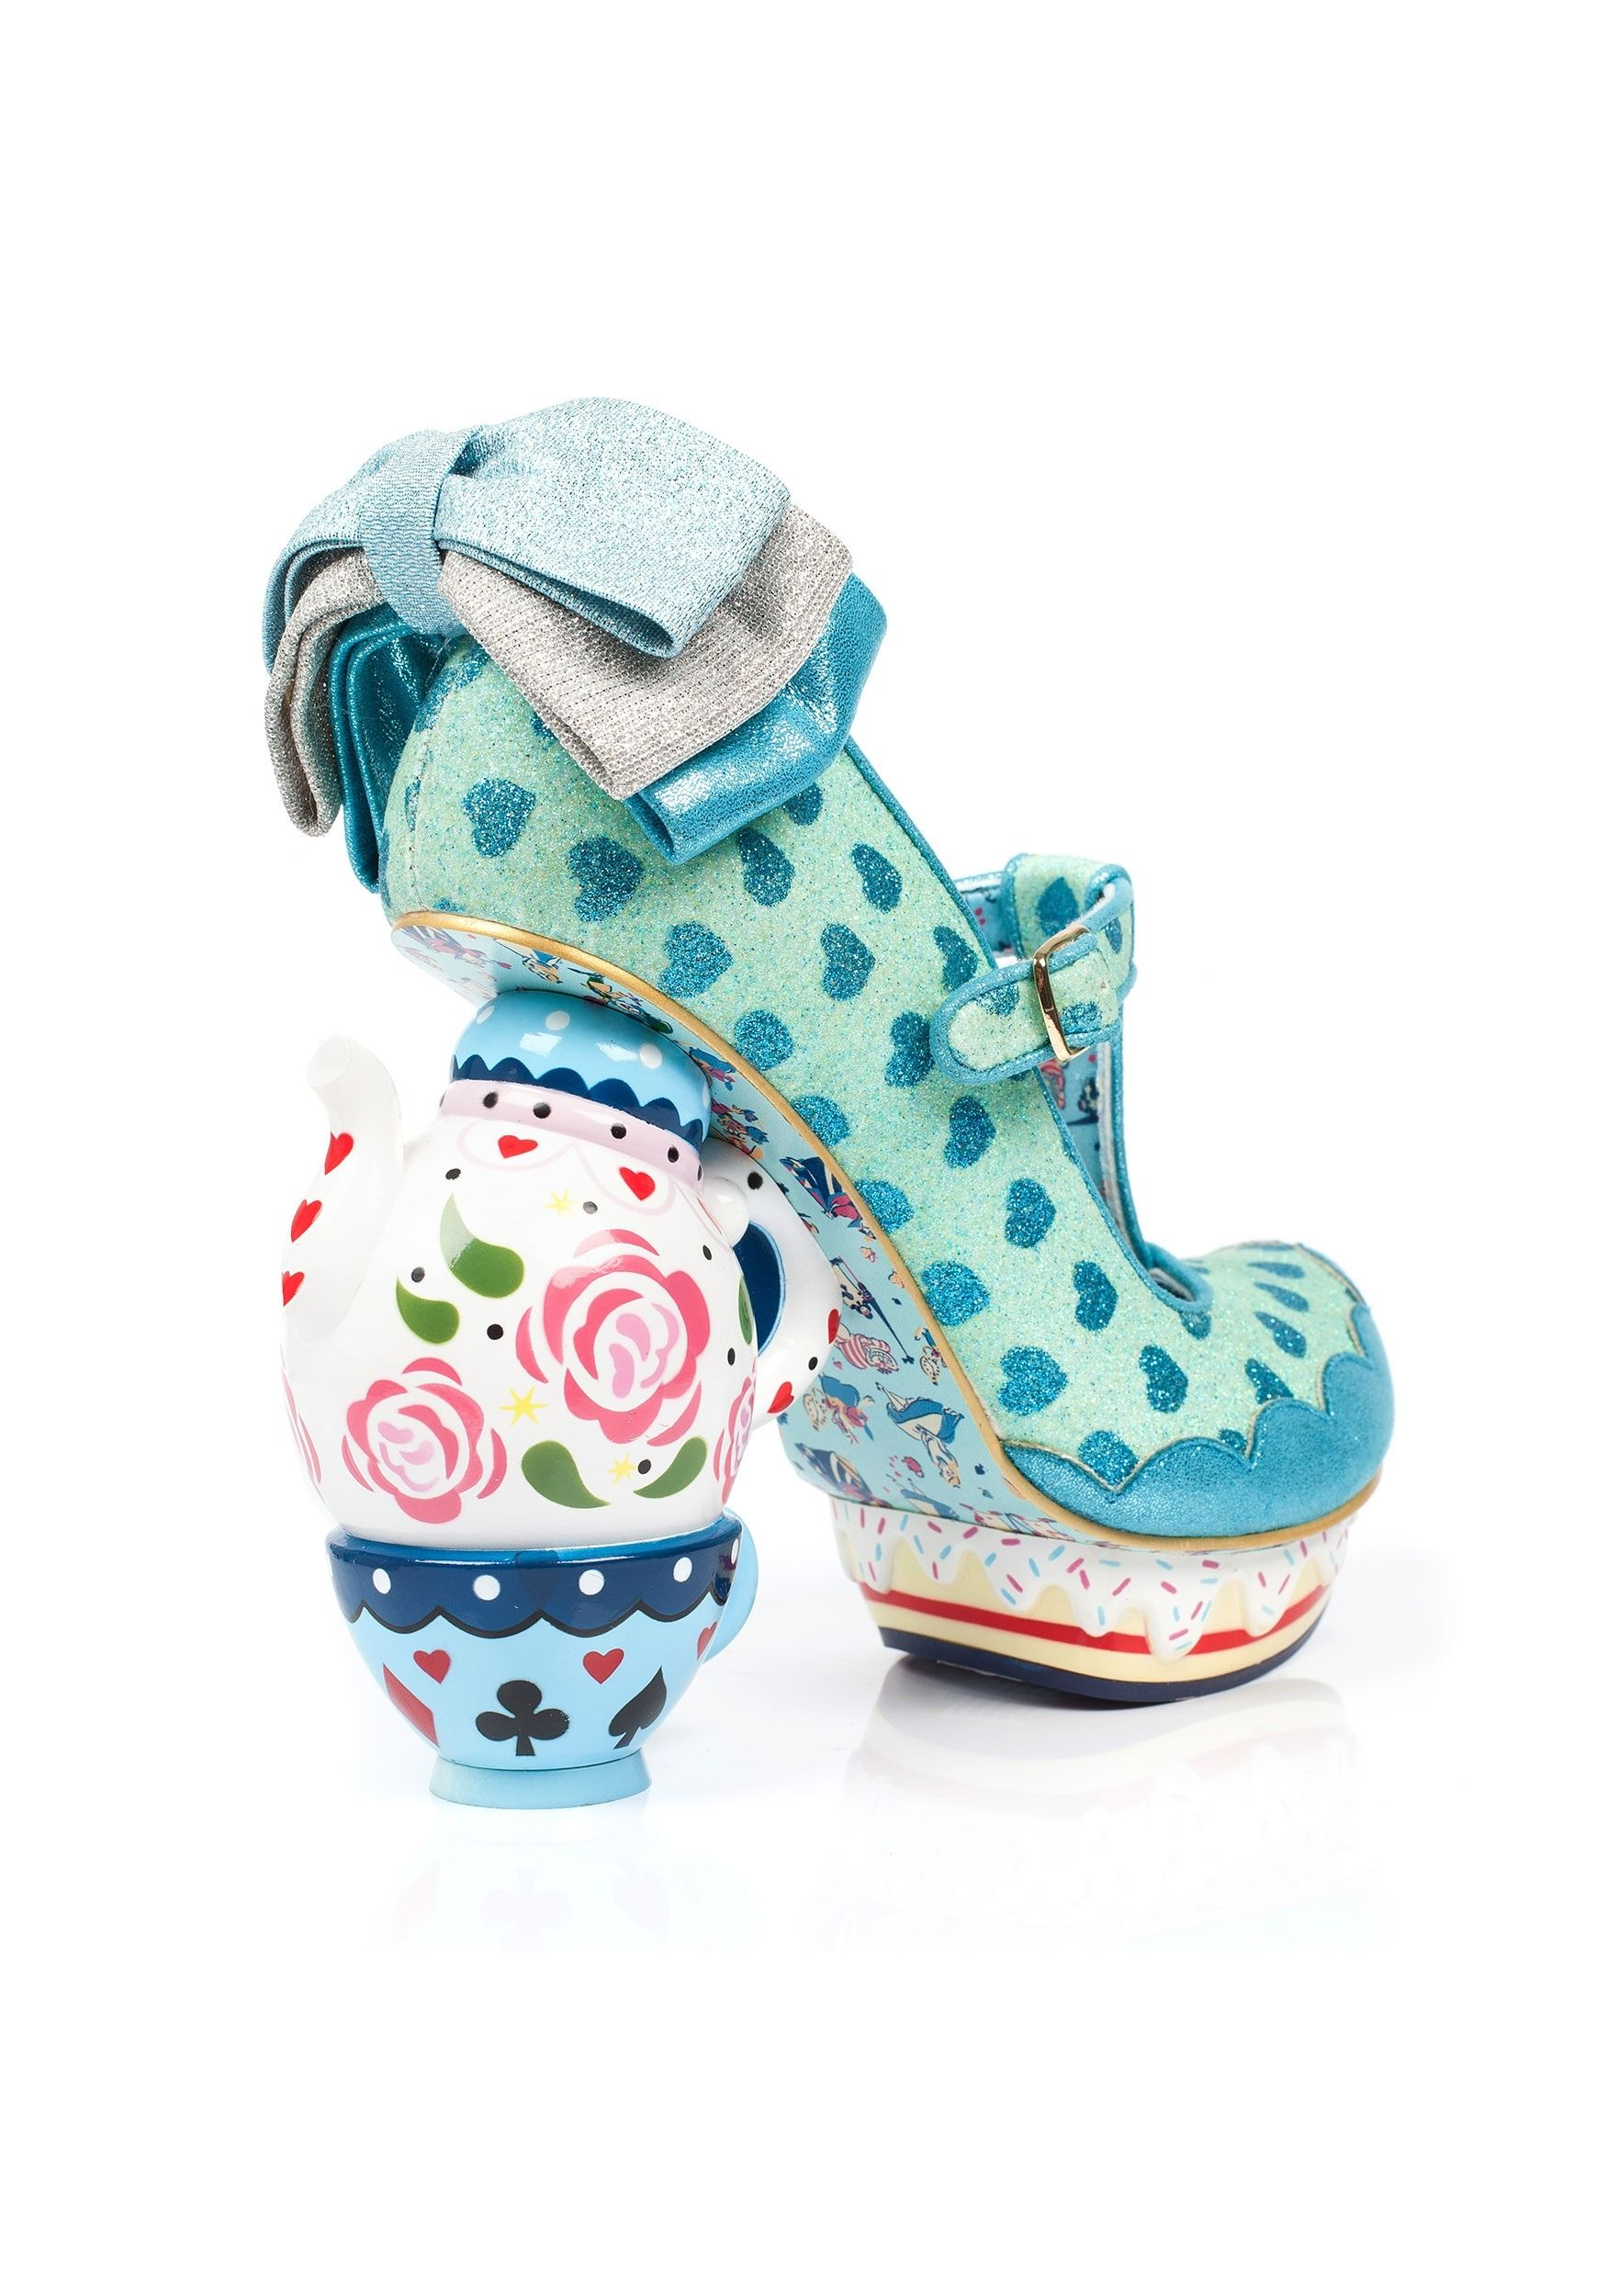 83105fb1d12 This pair of Irregular Choice Alice In Wonderland Teal My Cup Of Tea ...